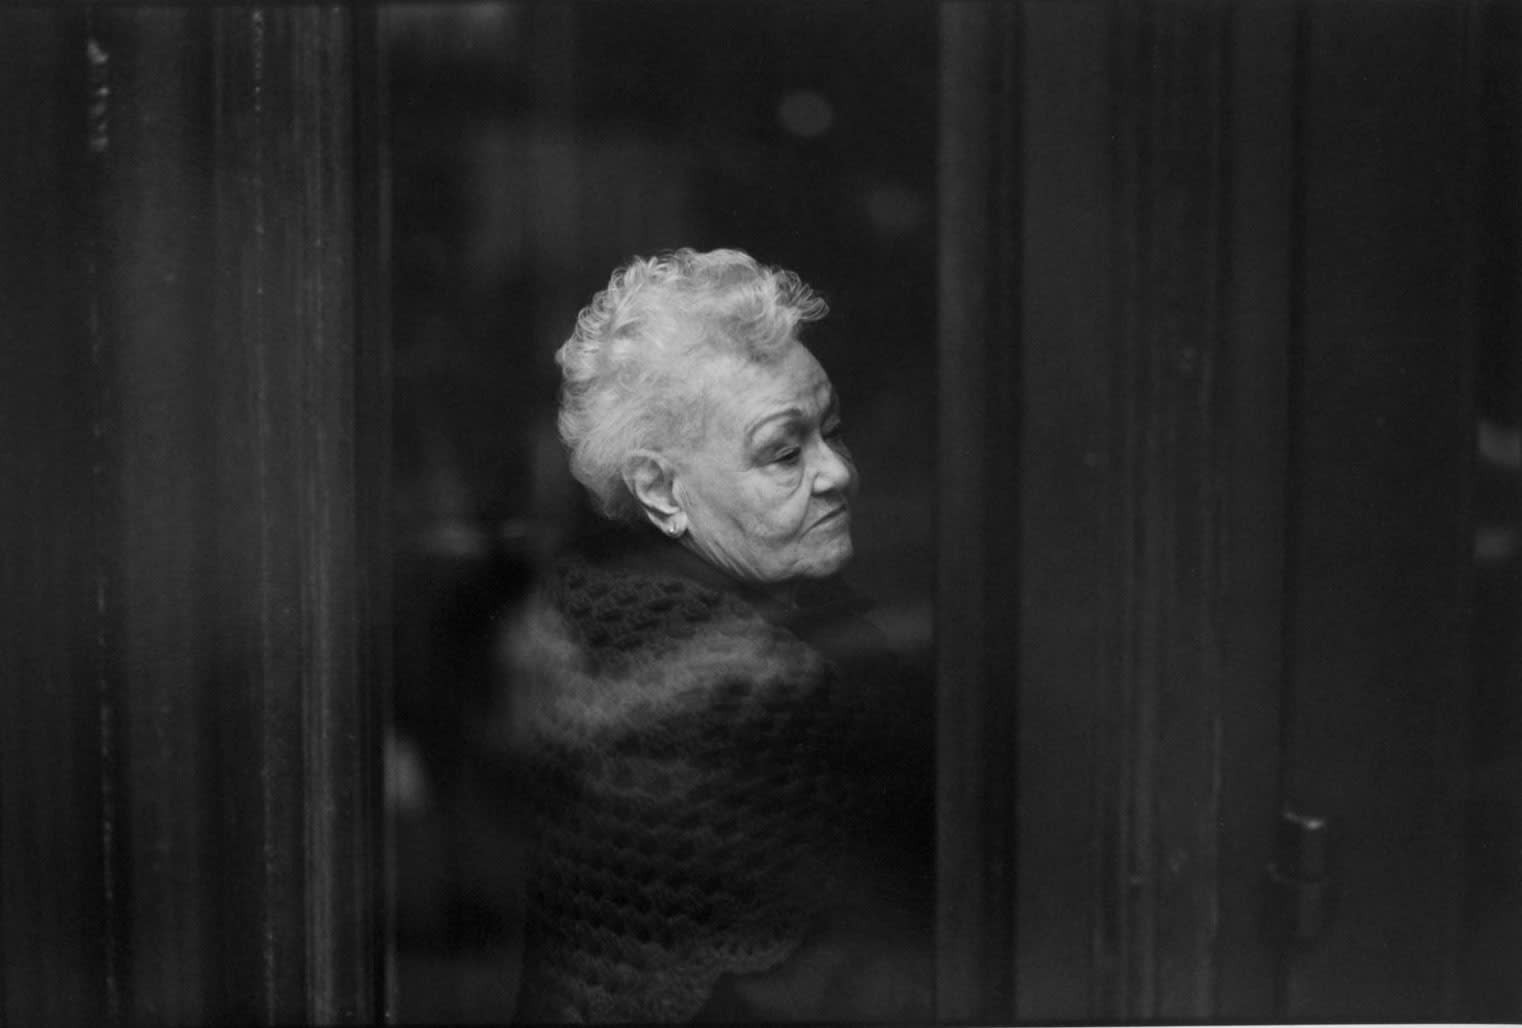 Tom Arndt, Woman waiting for a bus, Chicago, 1997